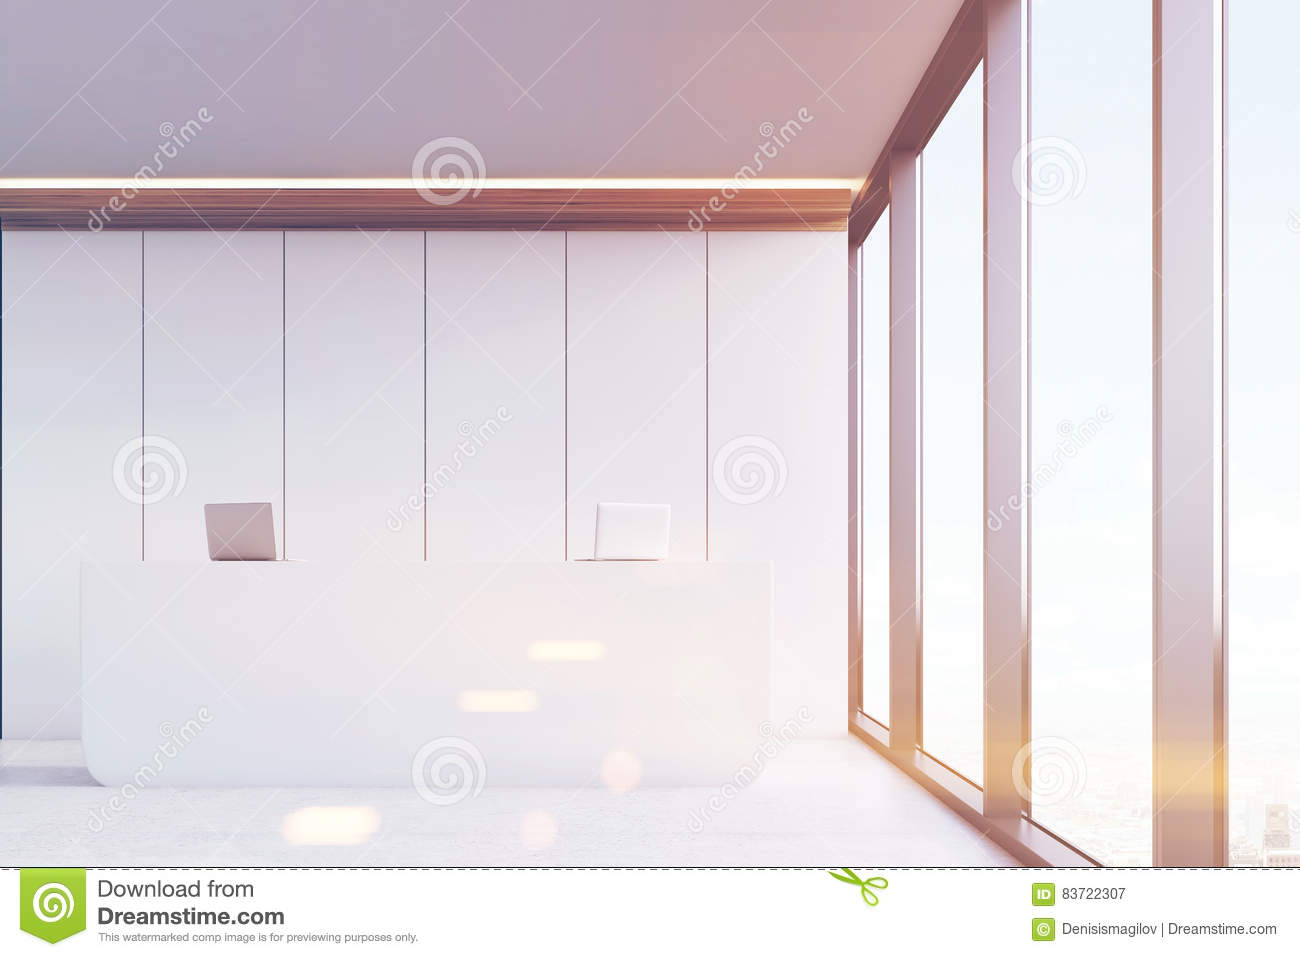 Front View, Office Reception, White Panels, Toned Stock Illustration